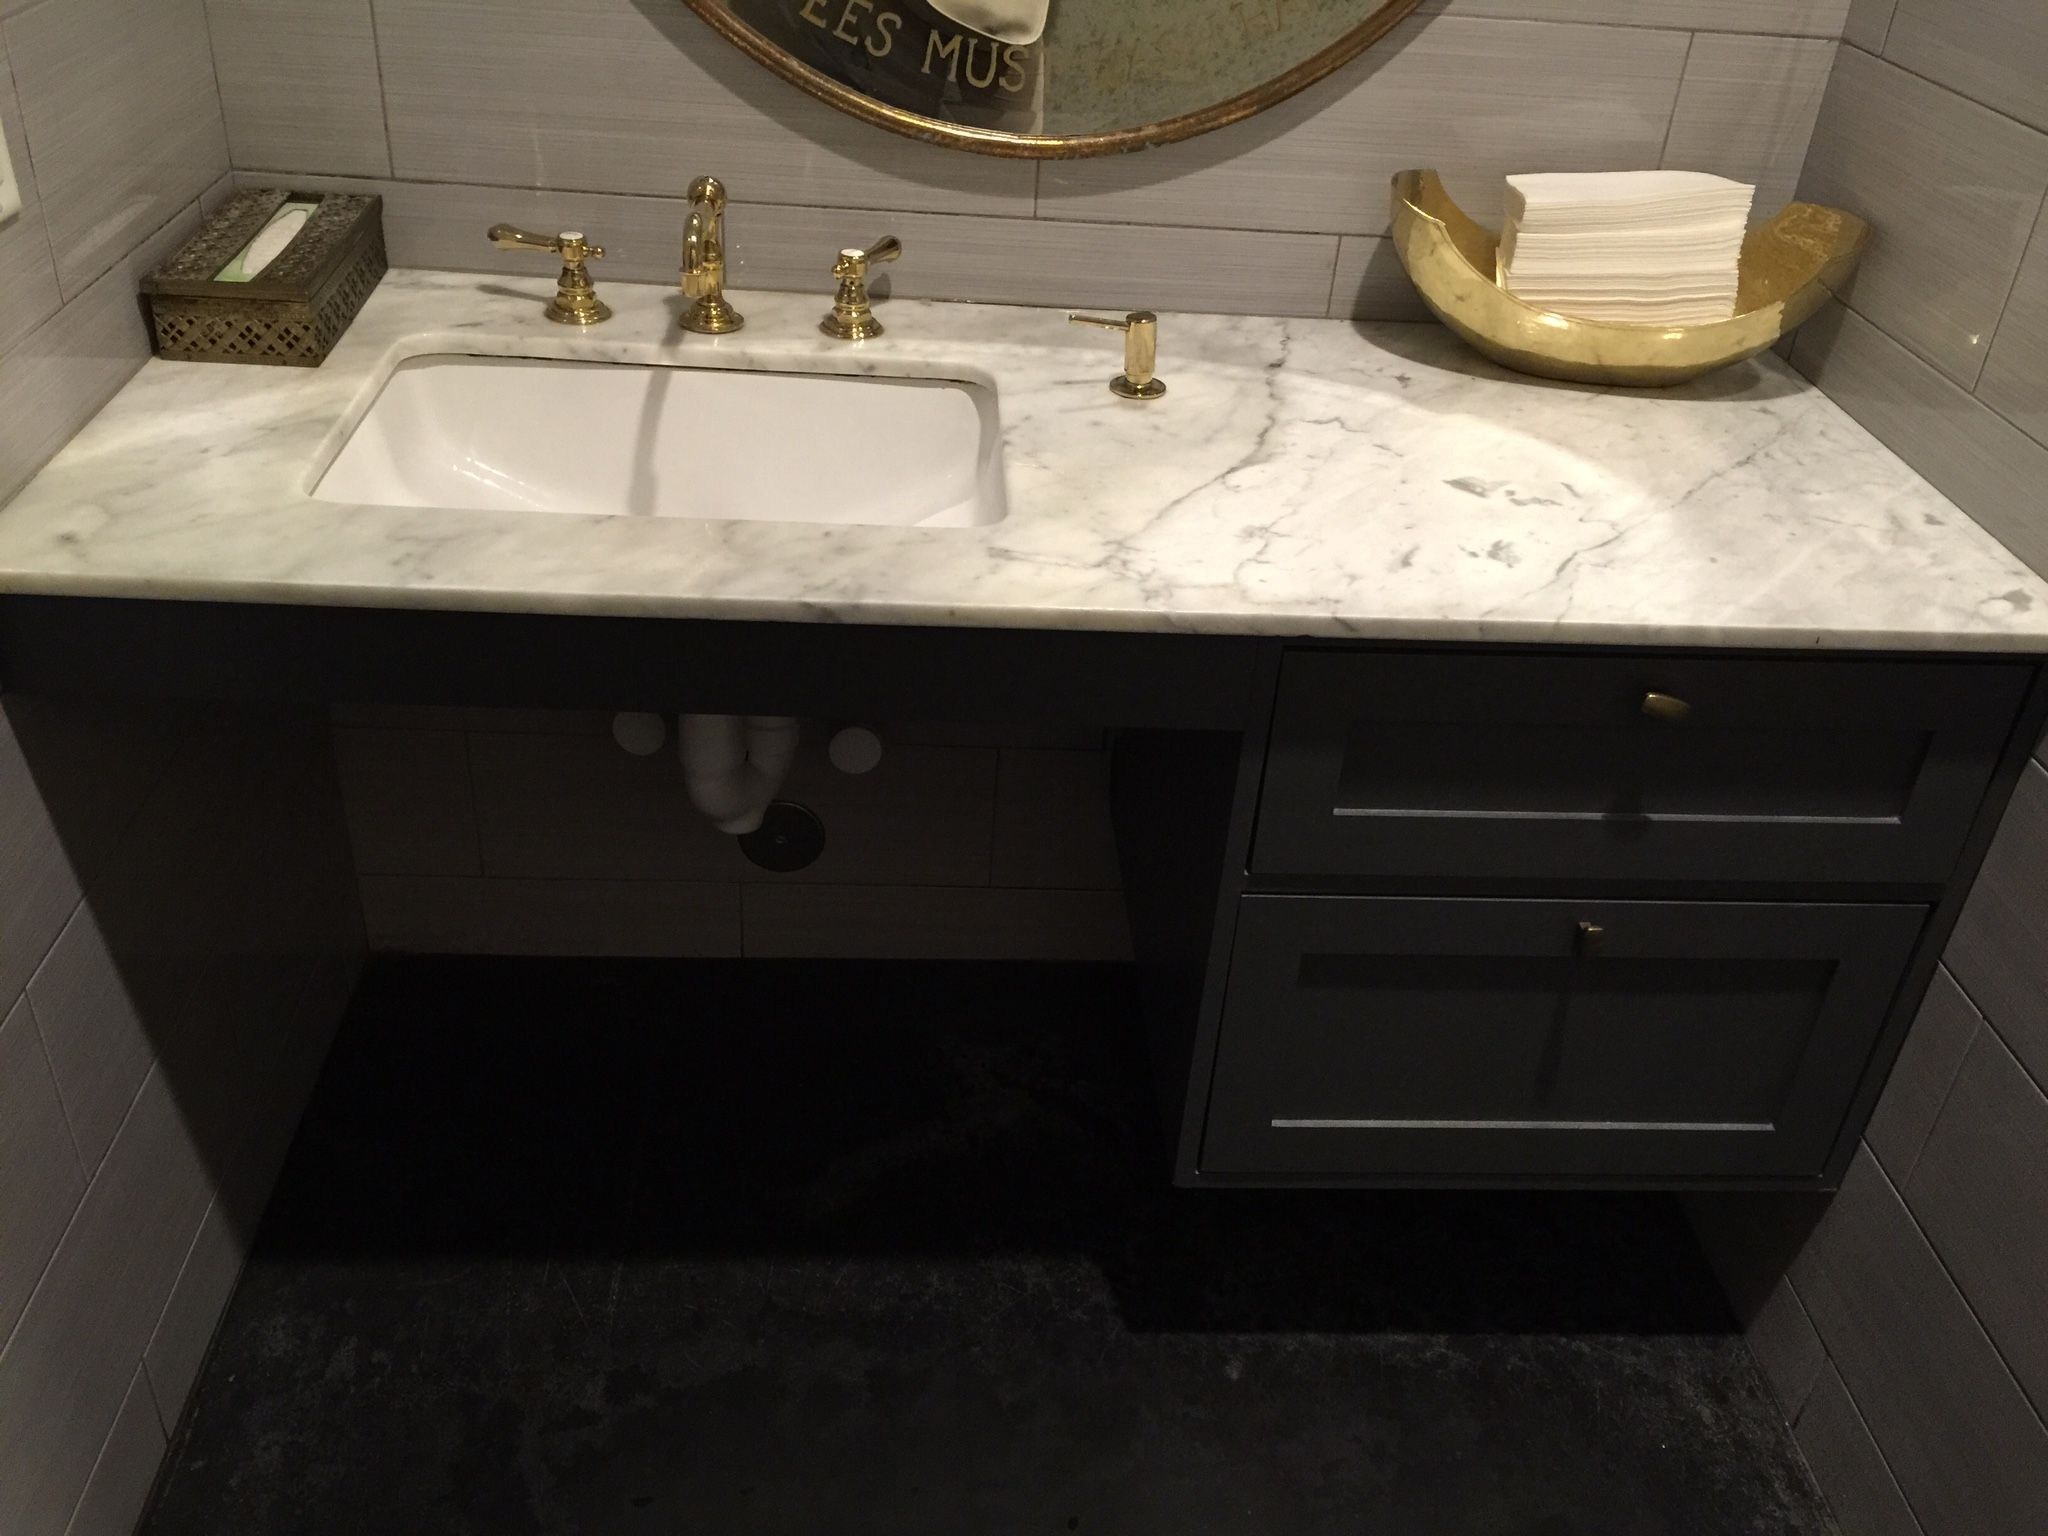 Shelve under sink for towels and one large pull out drawer ranch